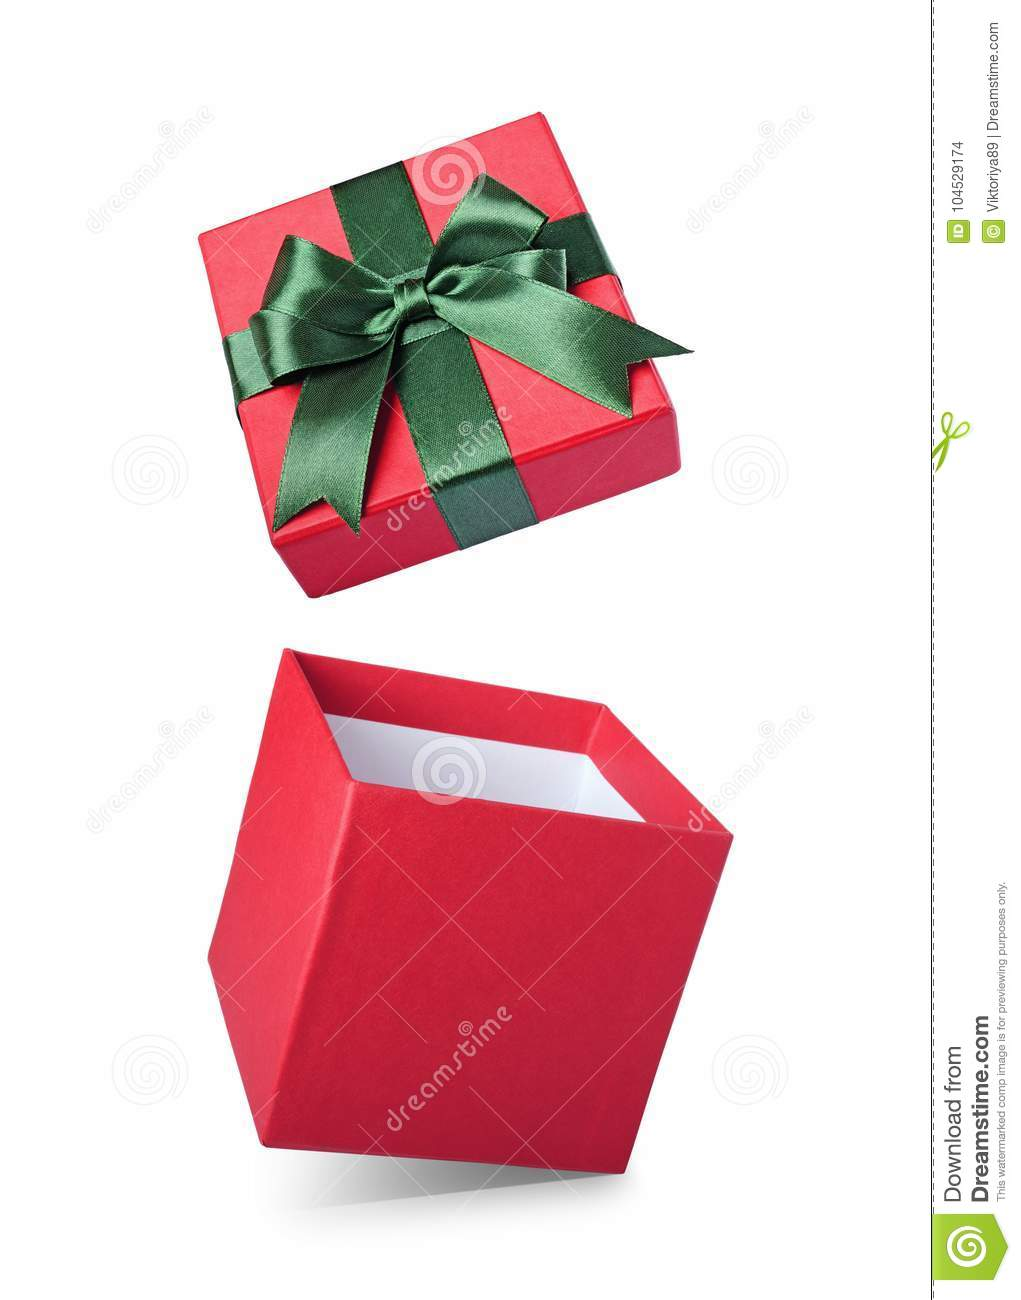 Classic red flying open gift box with green satin bow